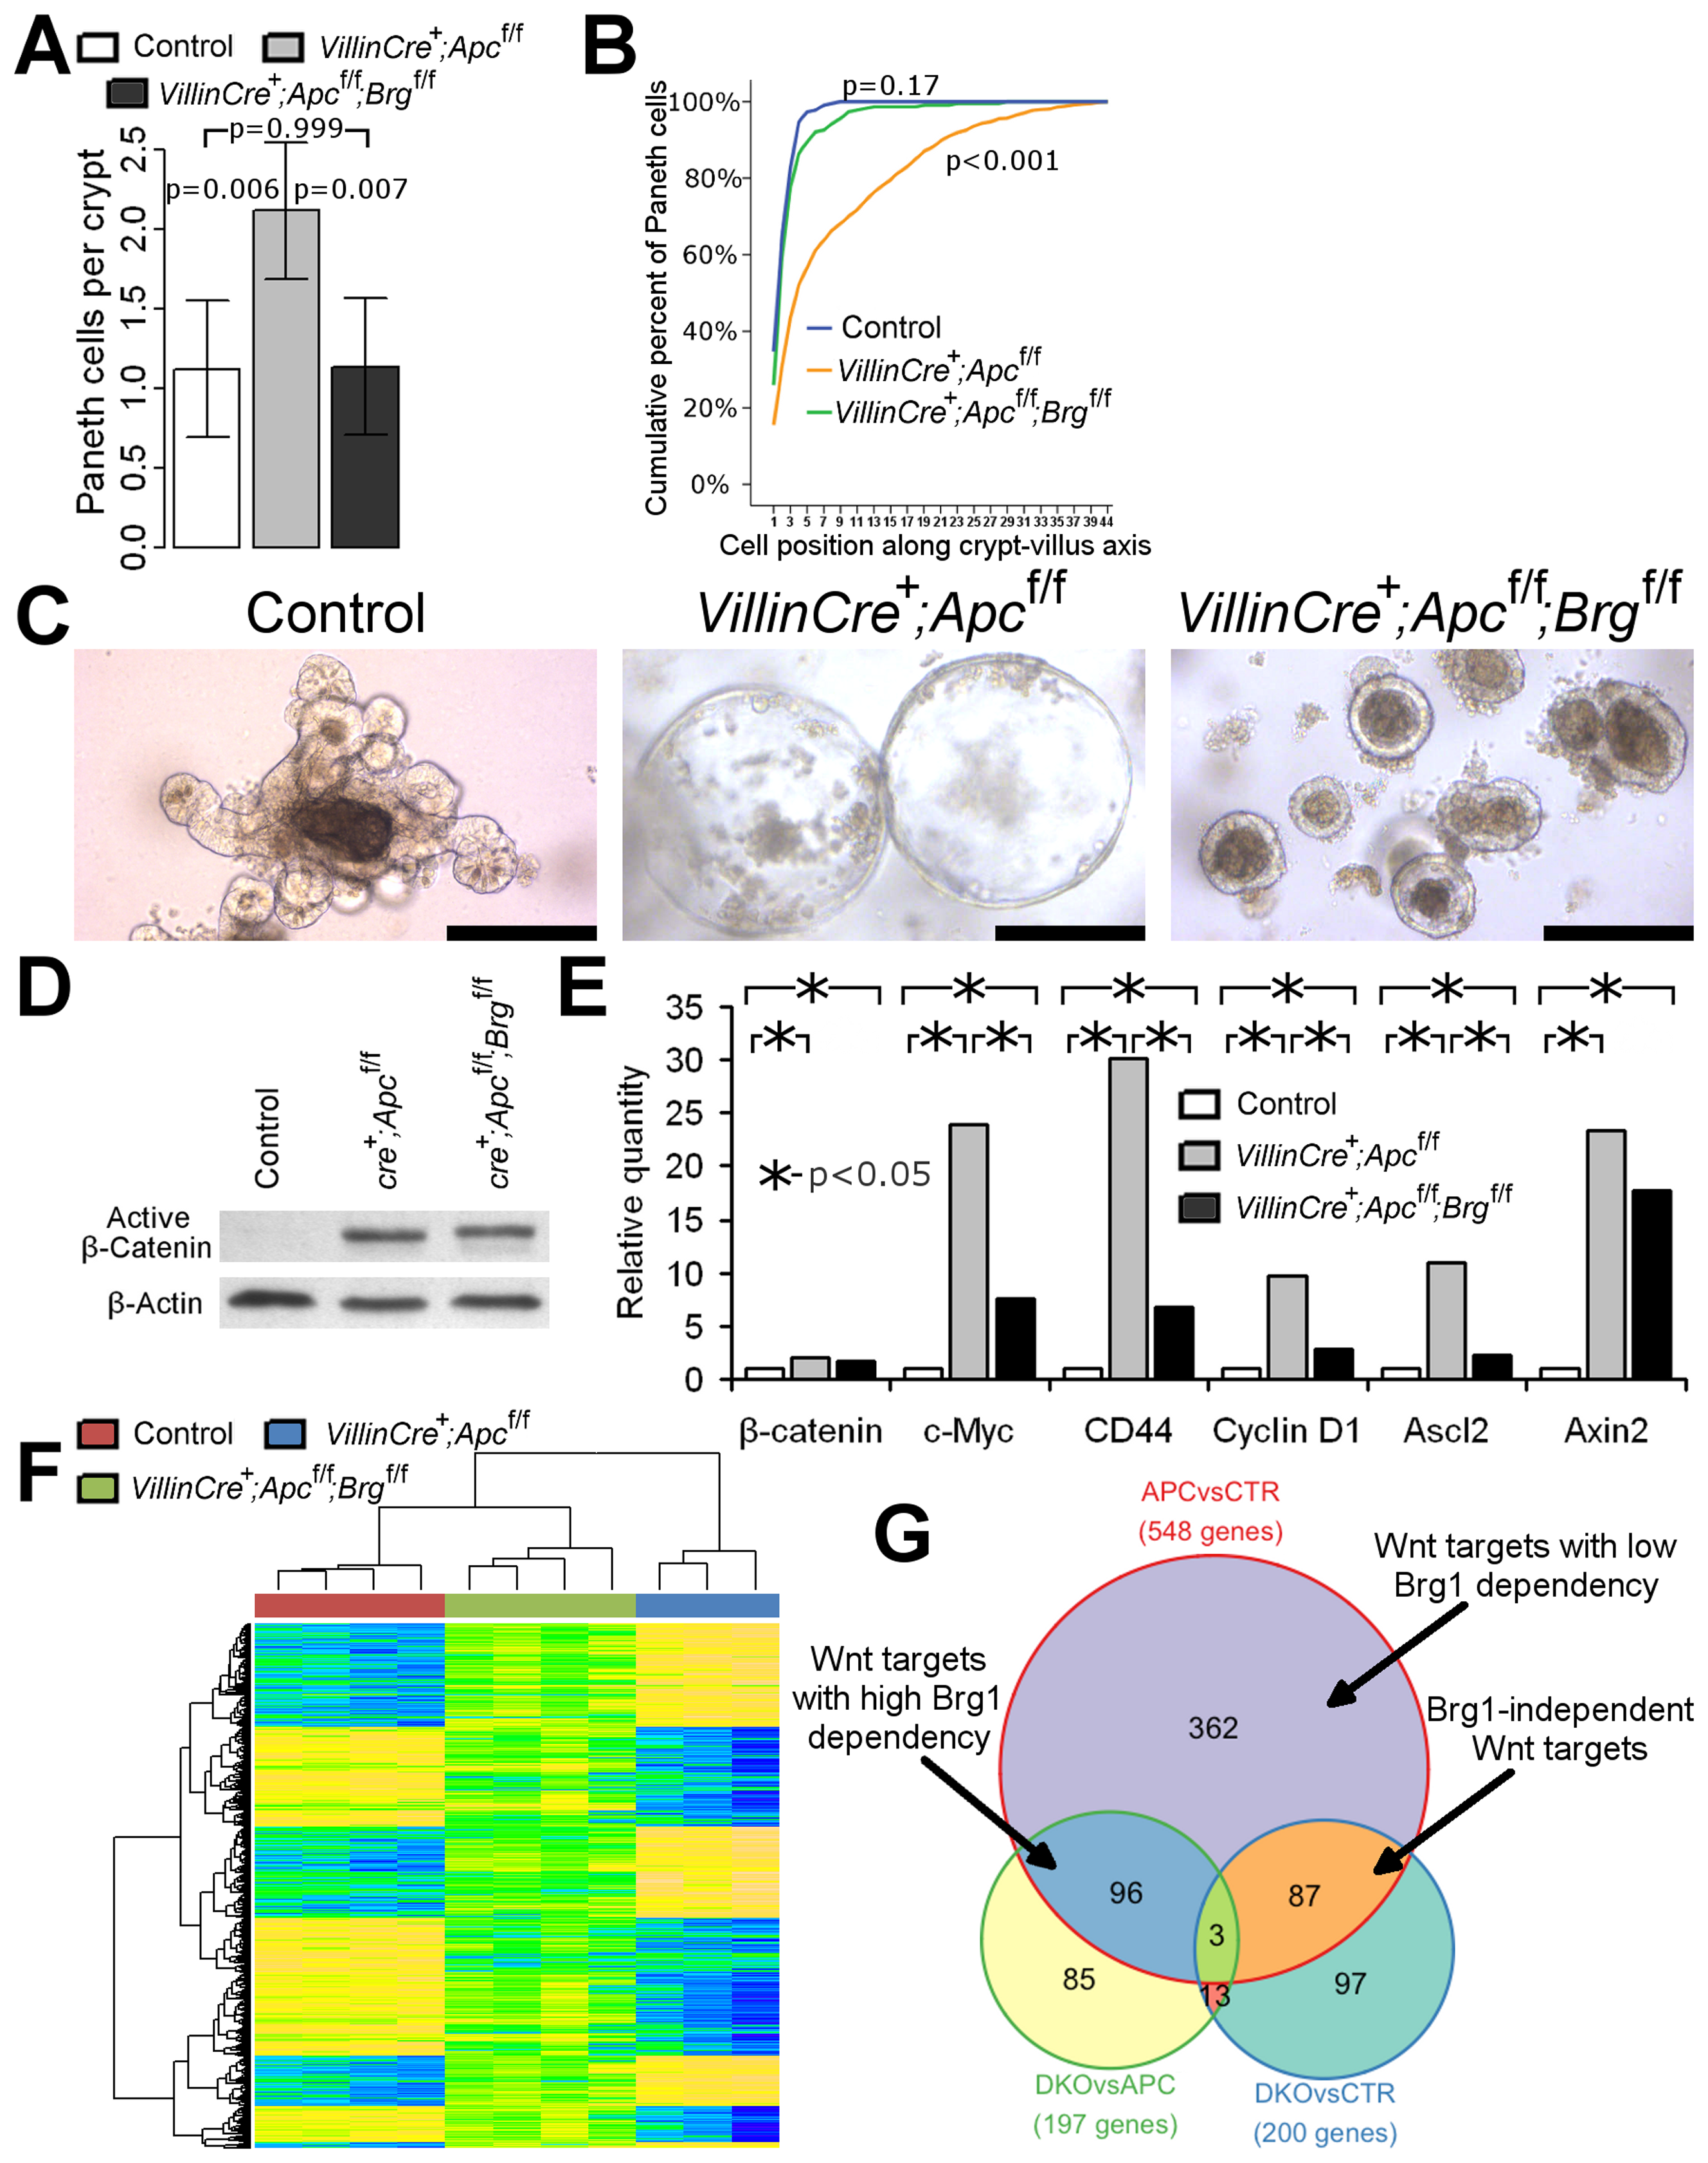 Brg1 loss attenuates Wnt target gene expression and prevents mislocalisation of Paneth cells and formation of aberrant organoids.